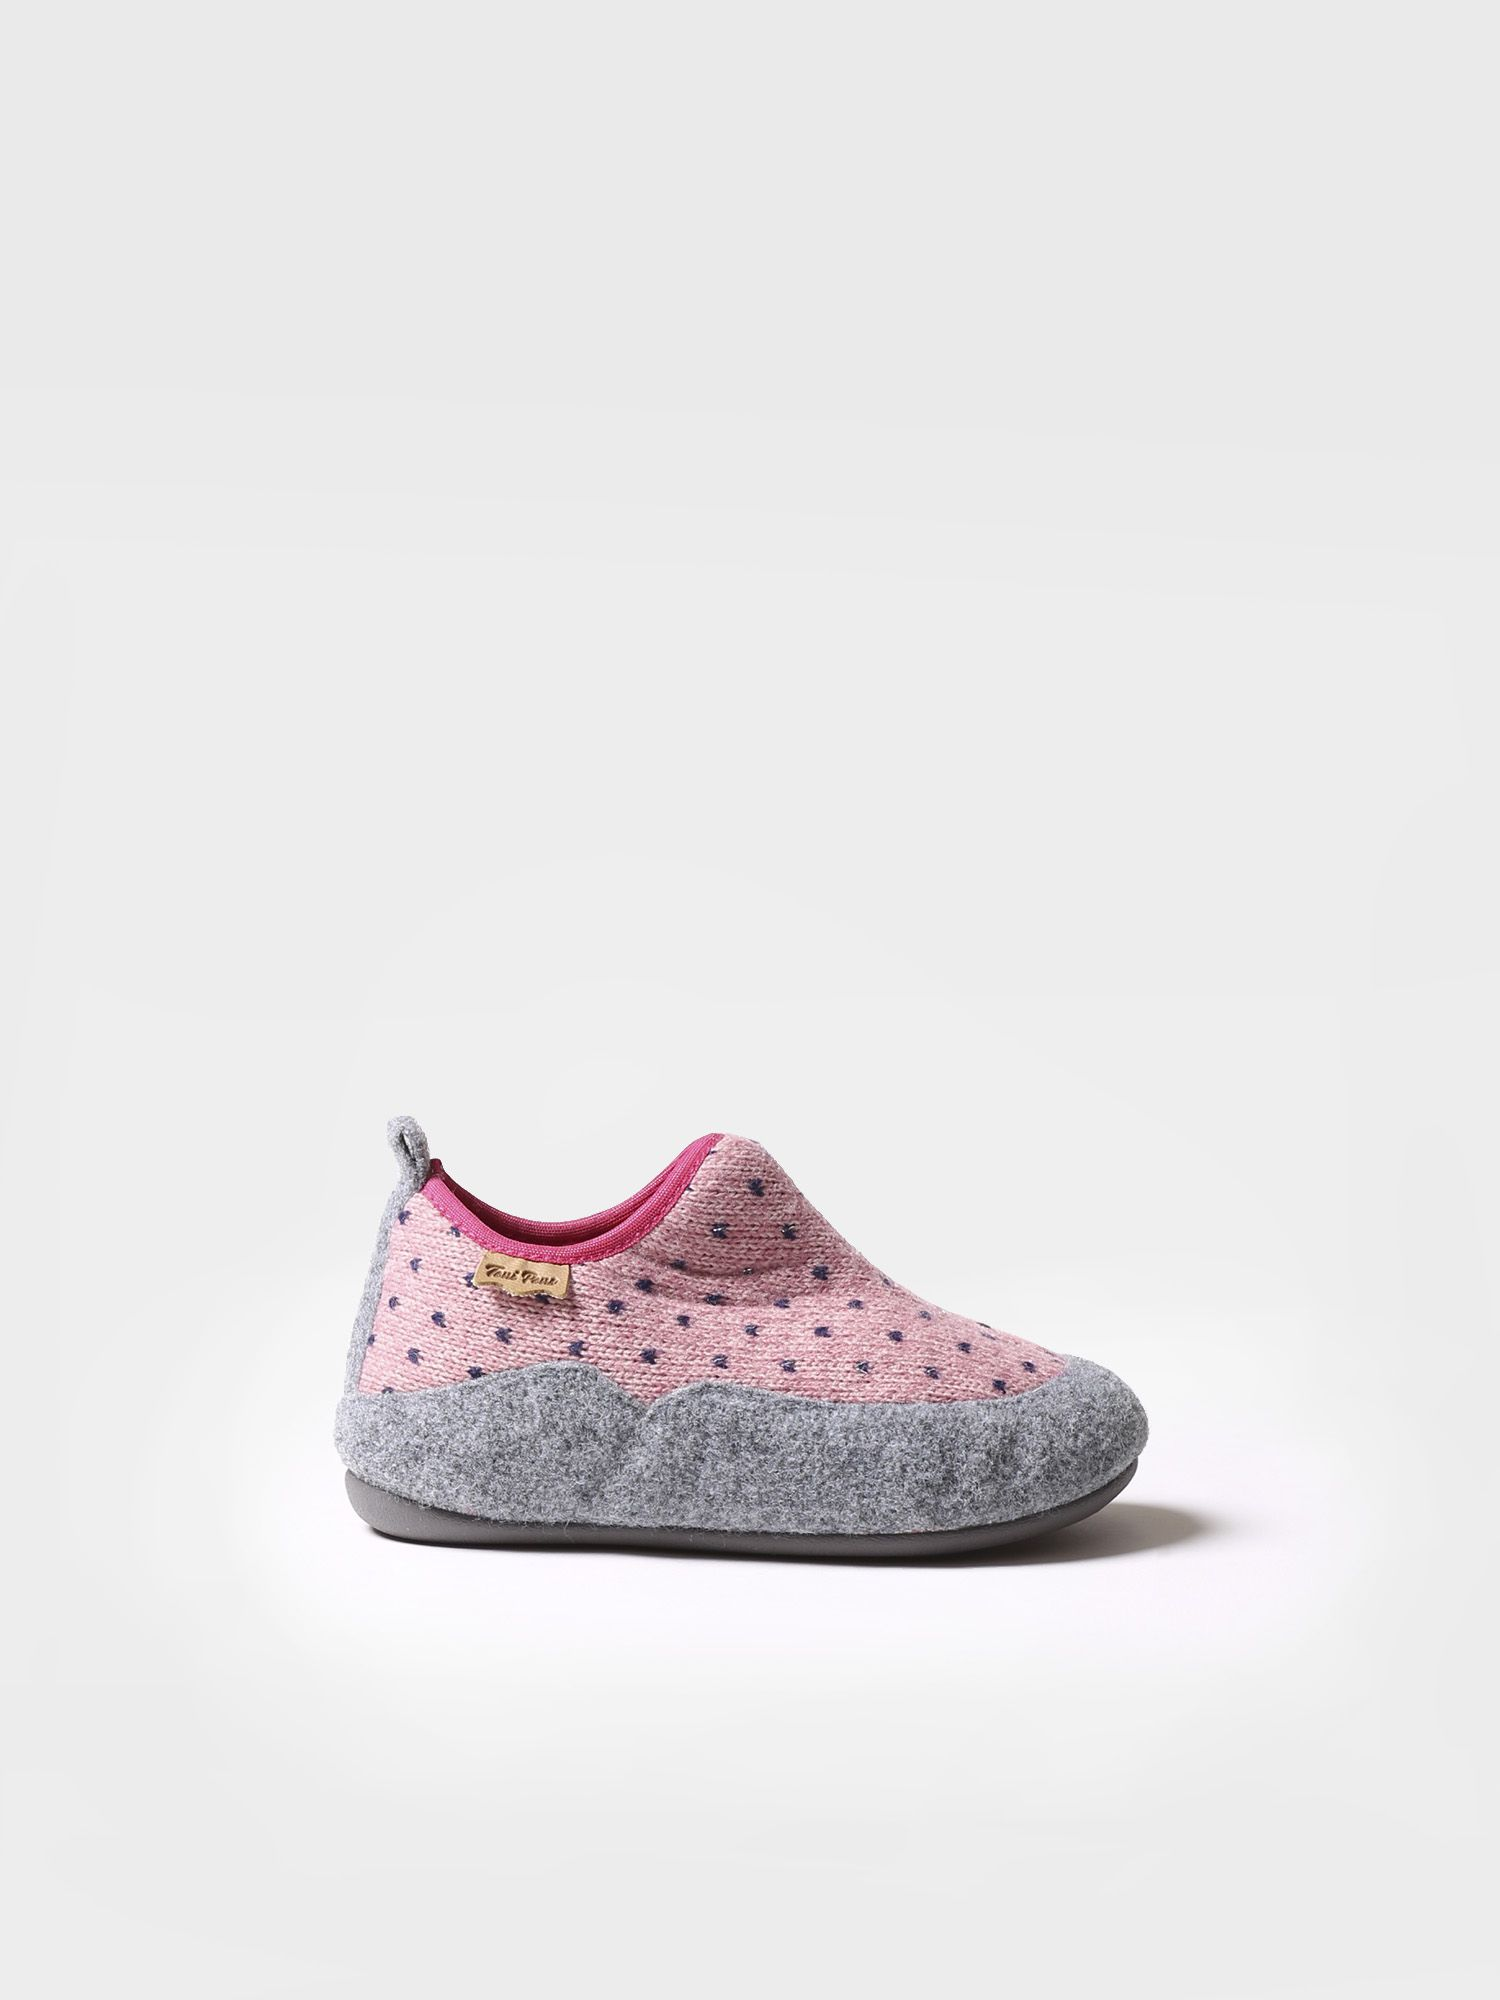 Slipper for children made of felt - LIOR-LO